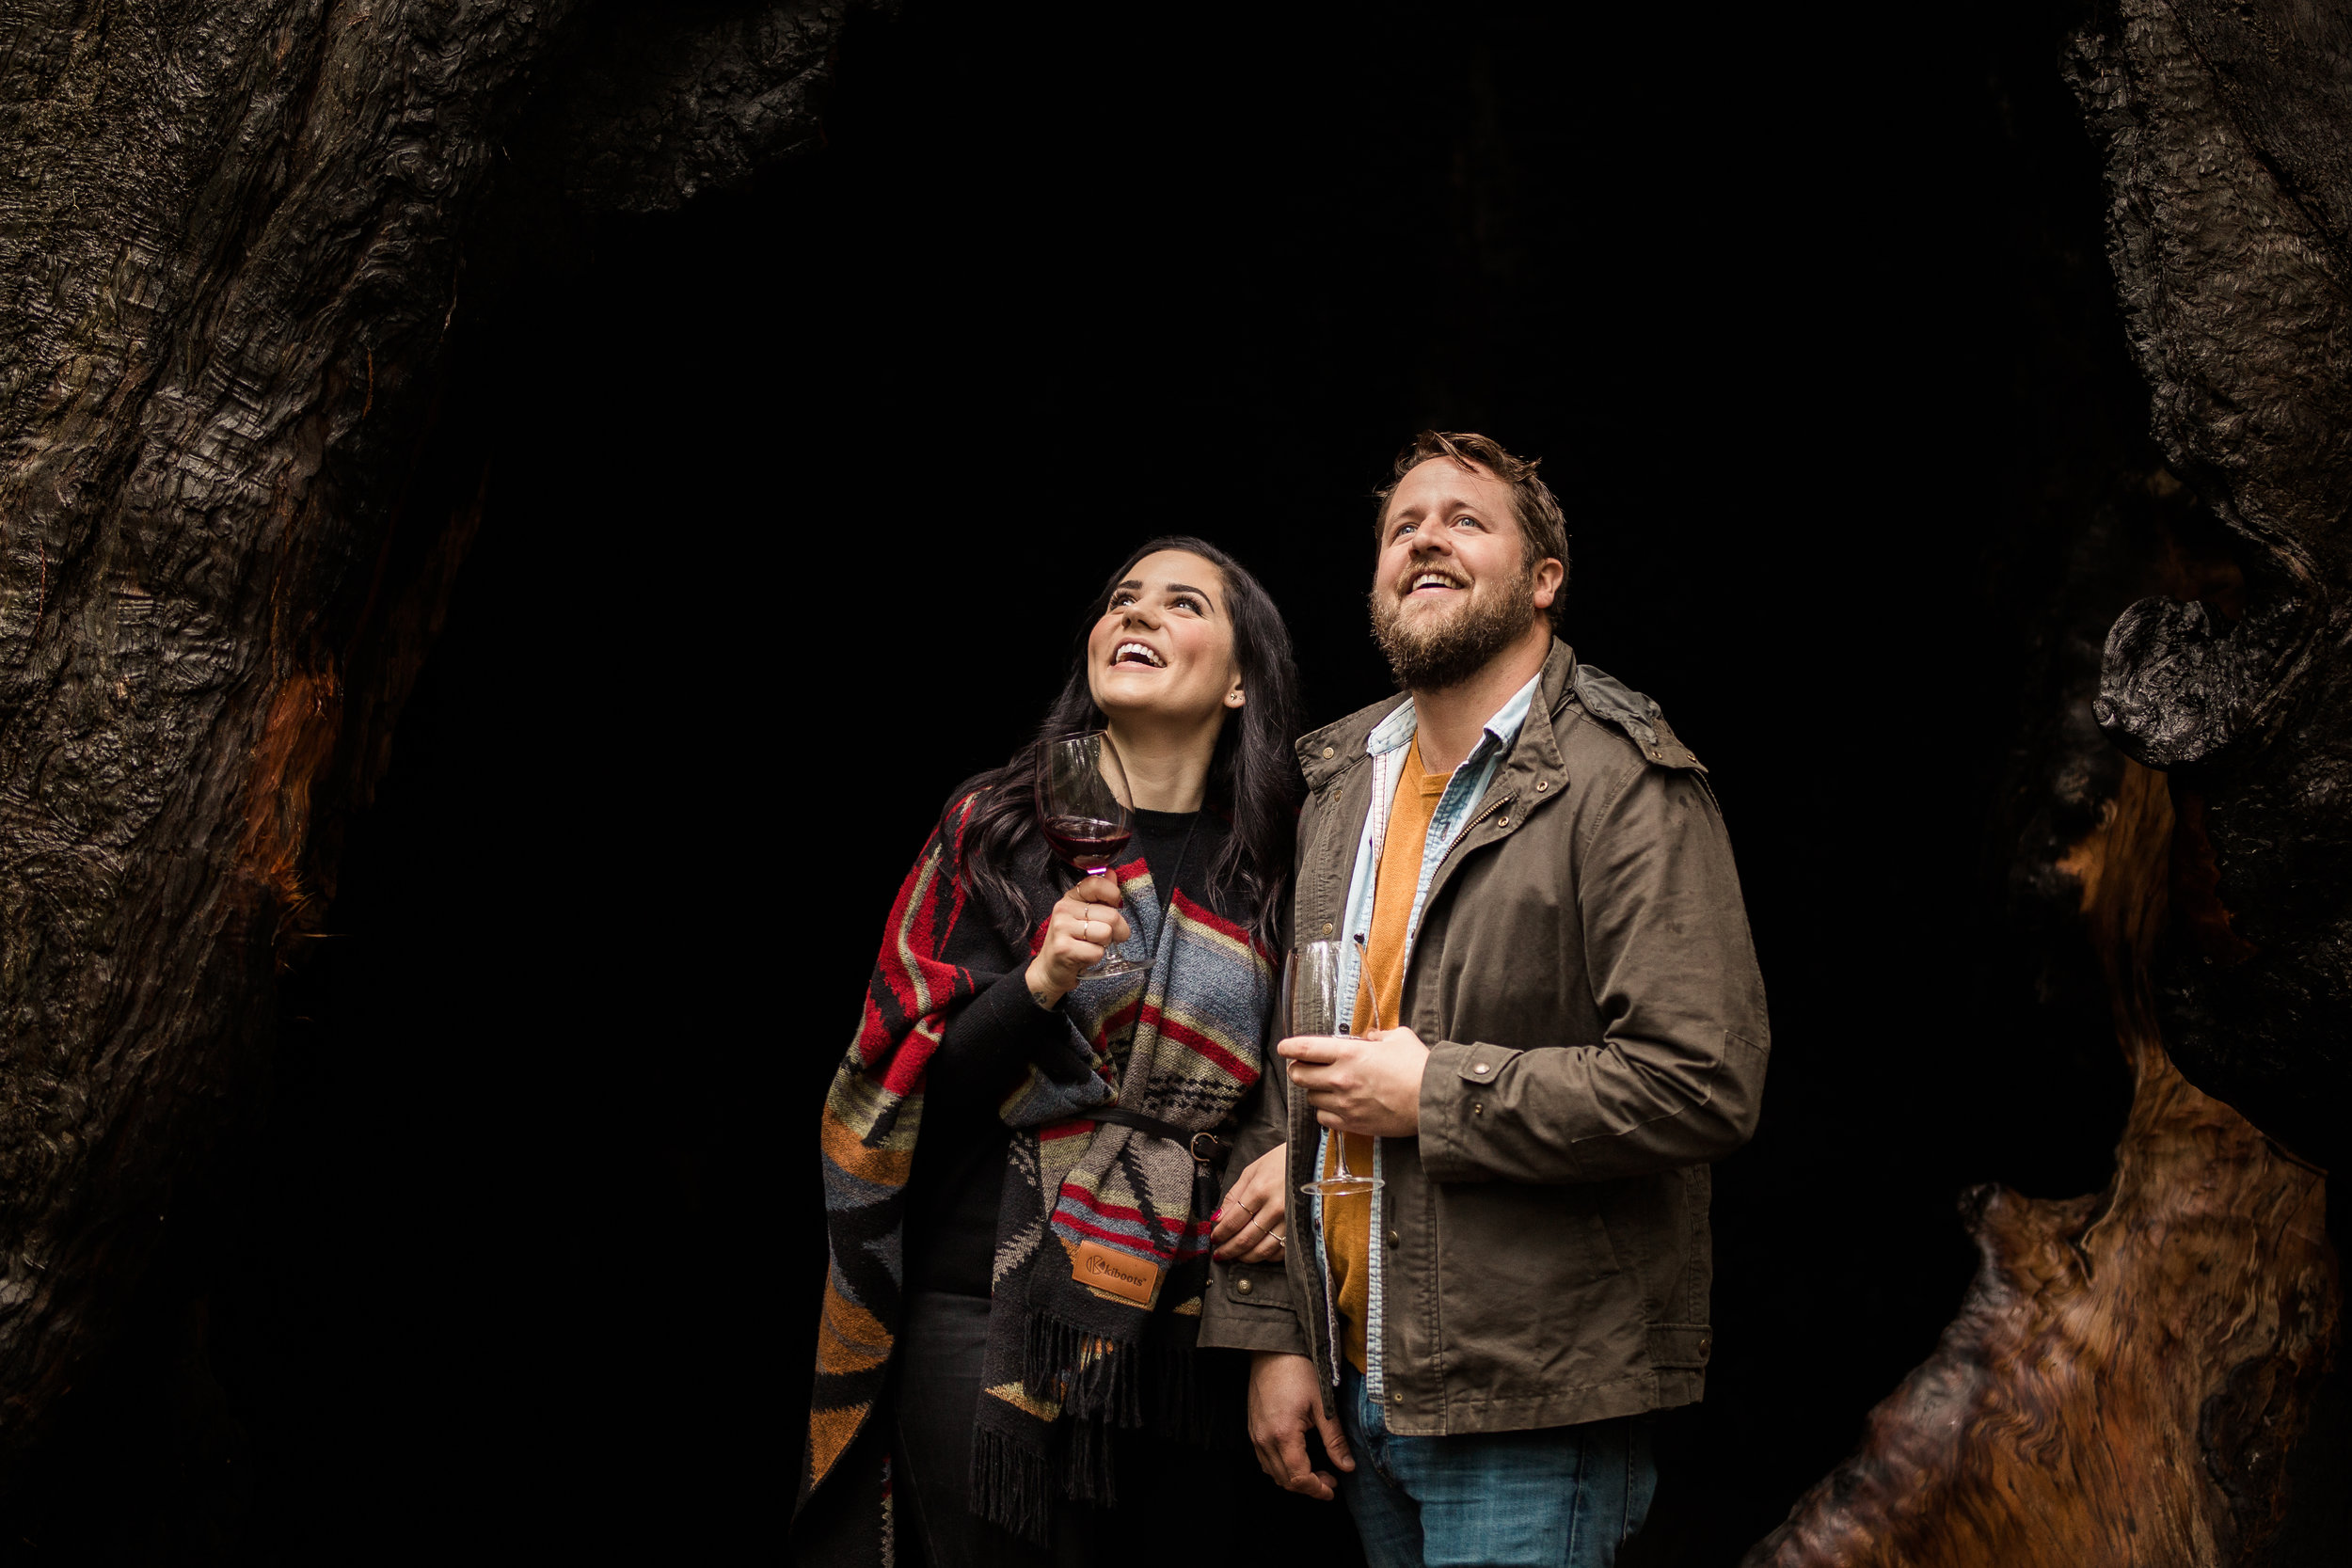 nicole-daacke-photography-redwoods-national-park-forest-rainy-foggy-adventure-engagement-session-humboldt-county-old-growth-redwood-tree-elopement-intimate-wedding-photographer-7.jpg